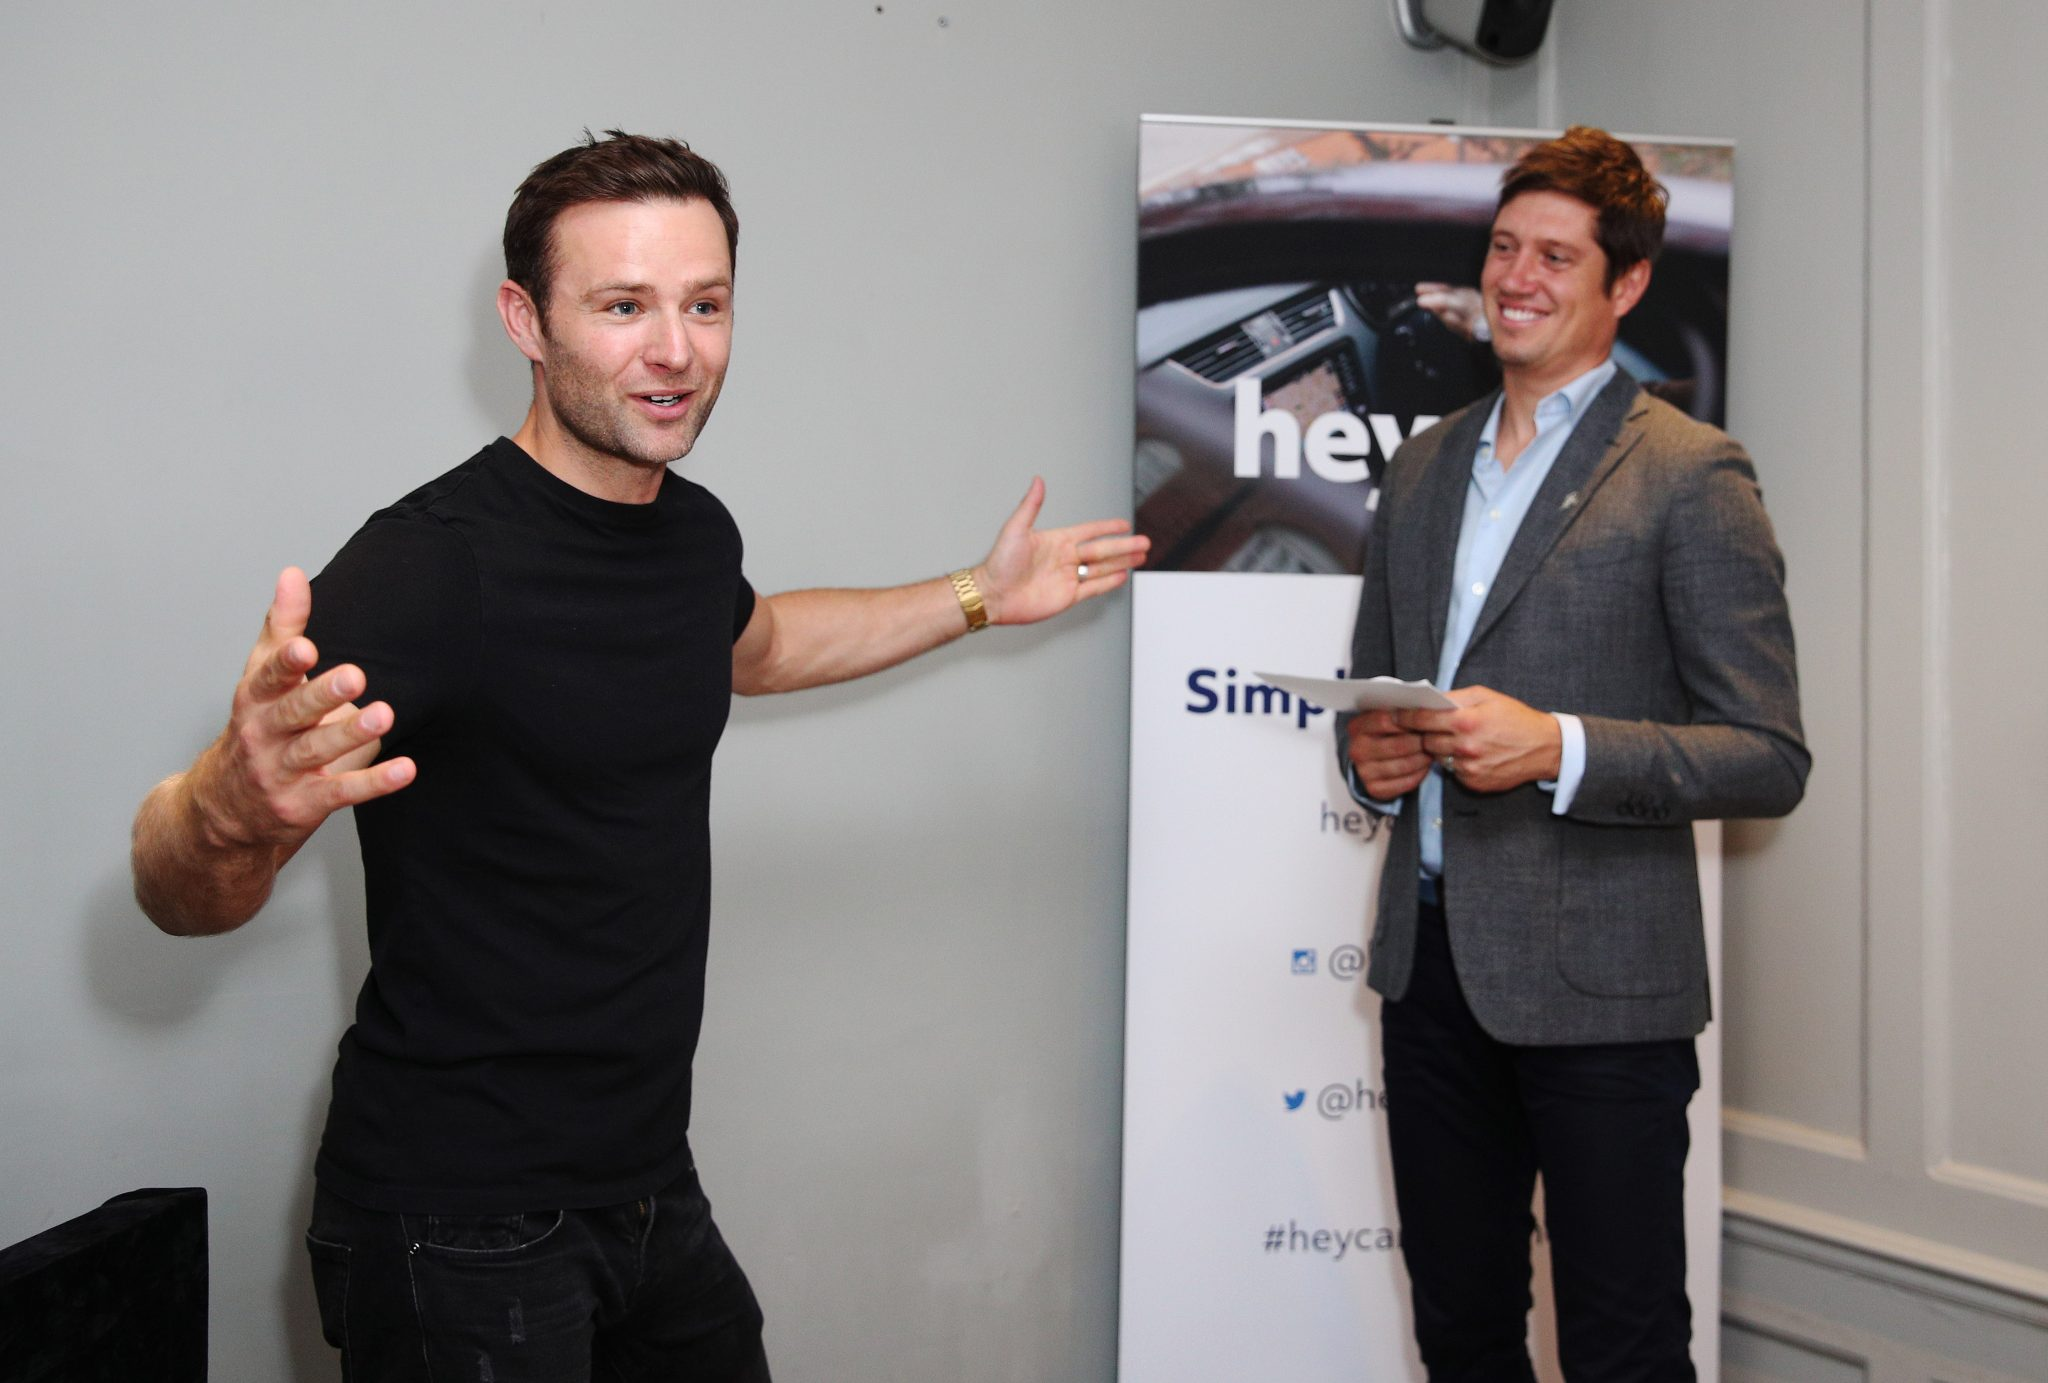 Harry Judd appeared today at the launch of heycar, the new online used car marketplace, at the Modern Pantry, Clerkenwell